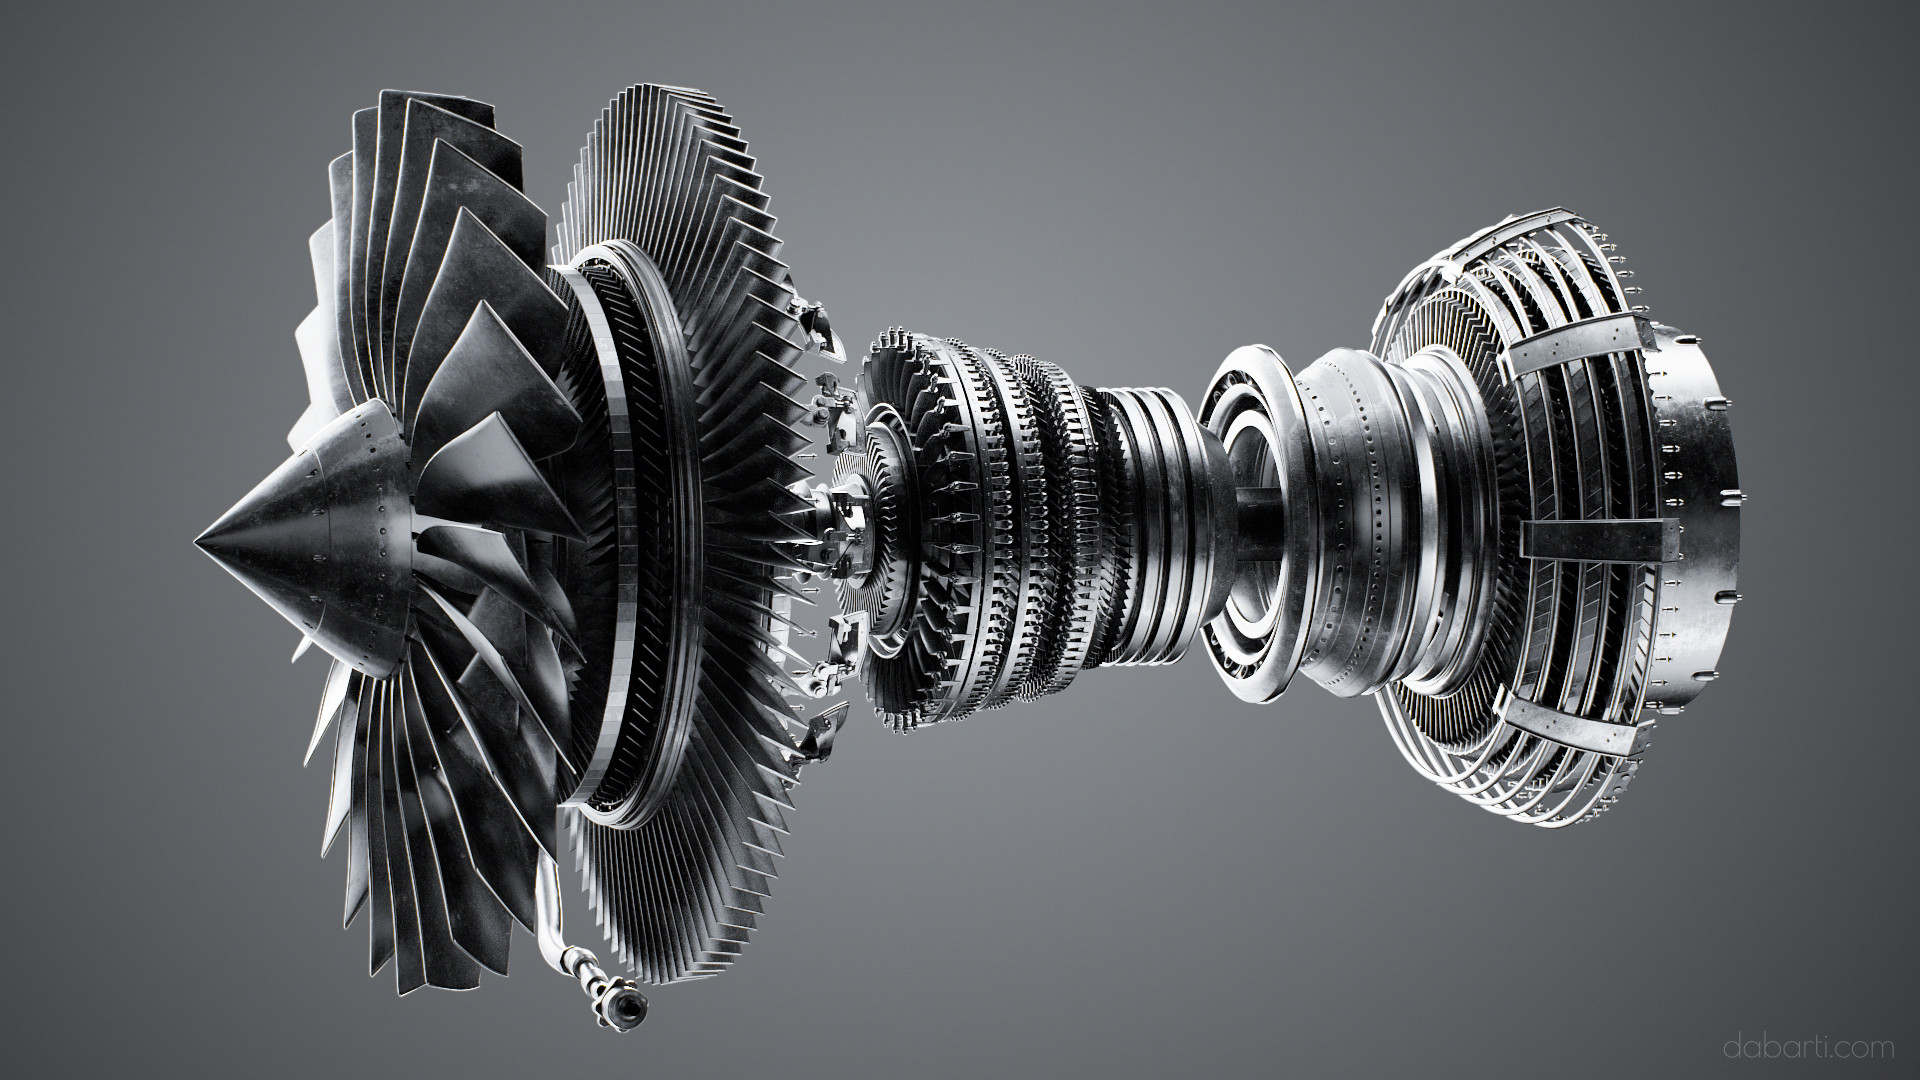 Jet Engine Wallpaper Posted By John Thompson